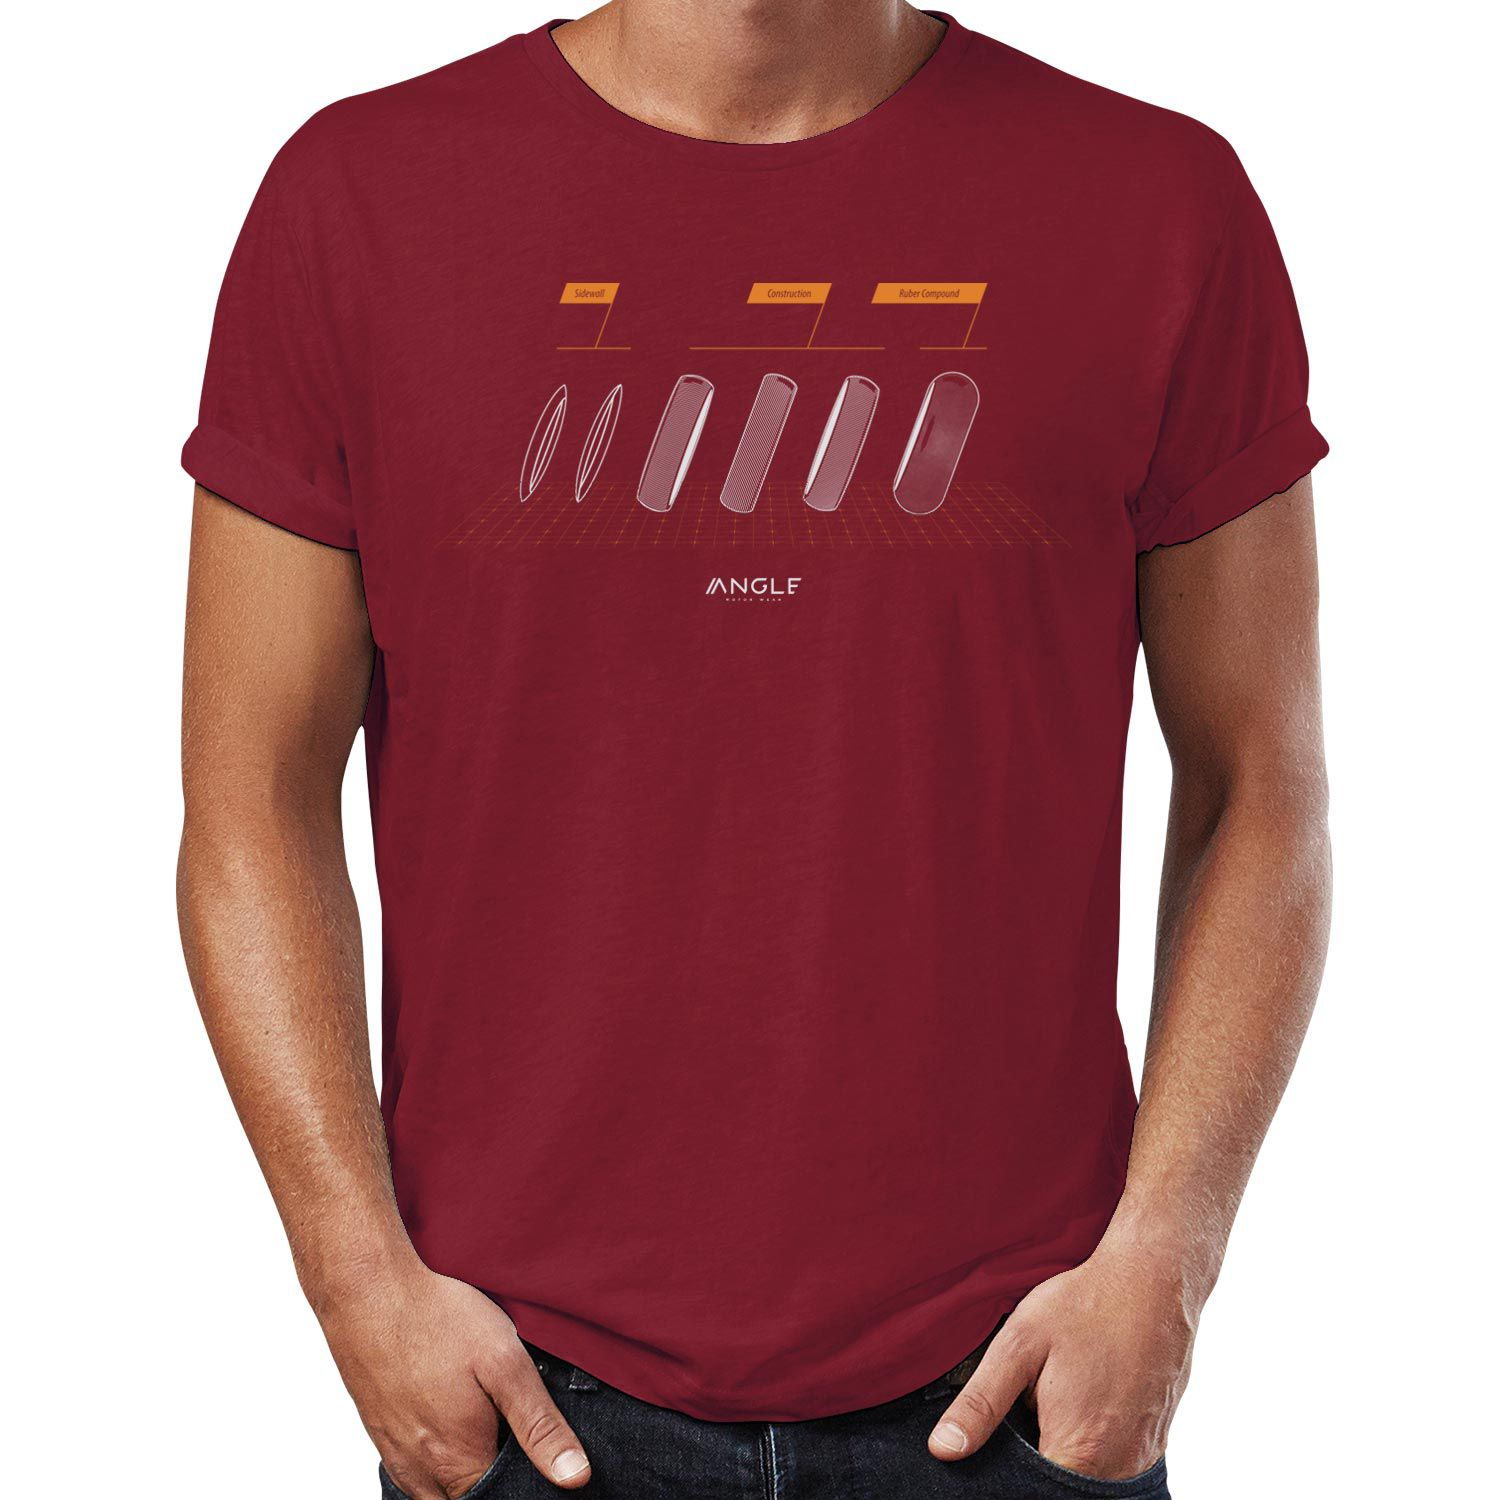 Camiseta Tire Indiano